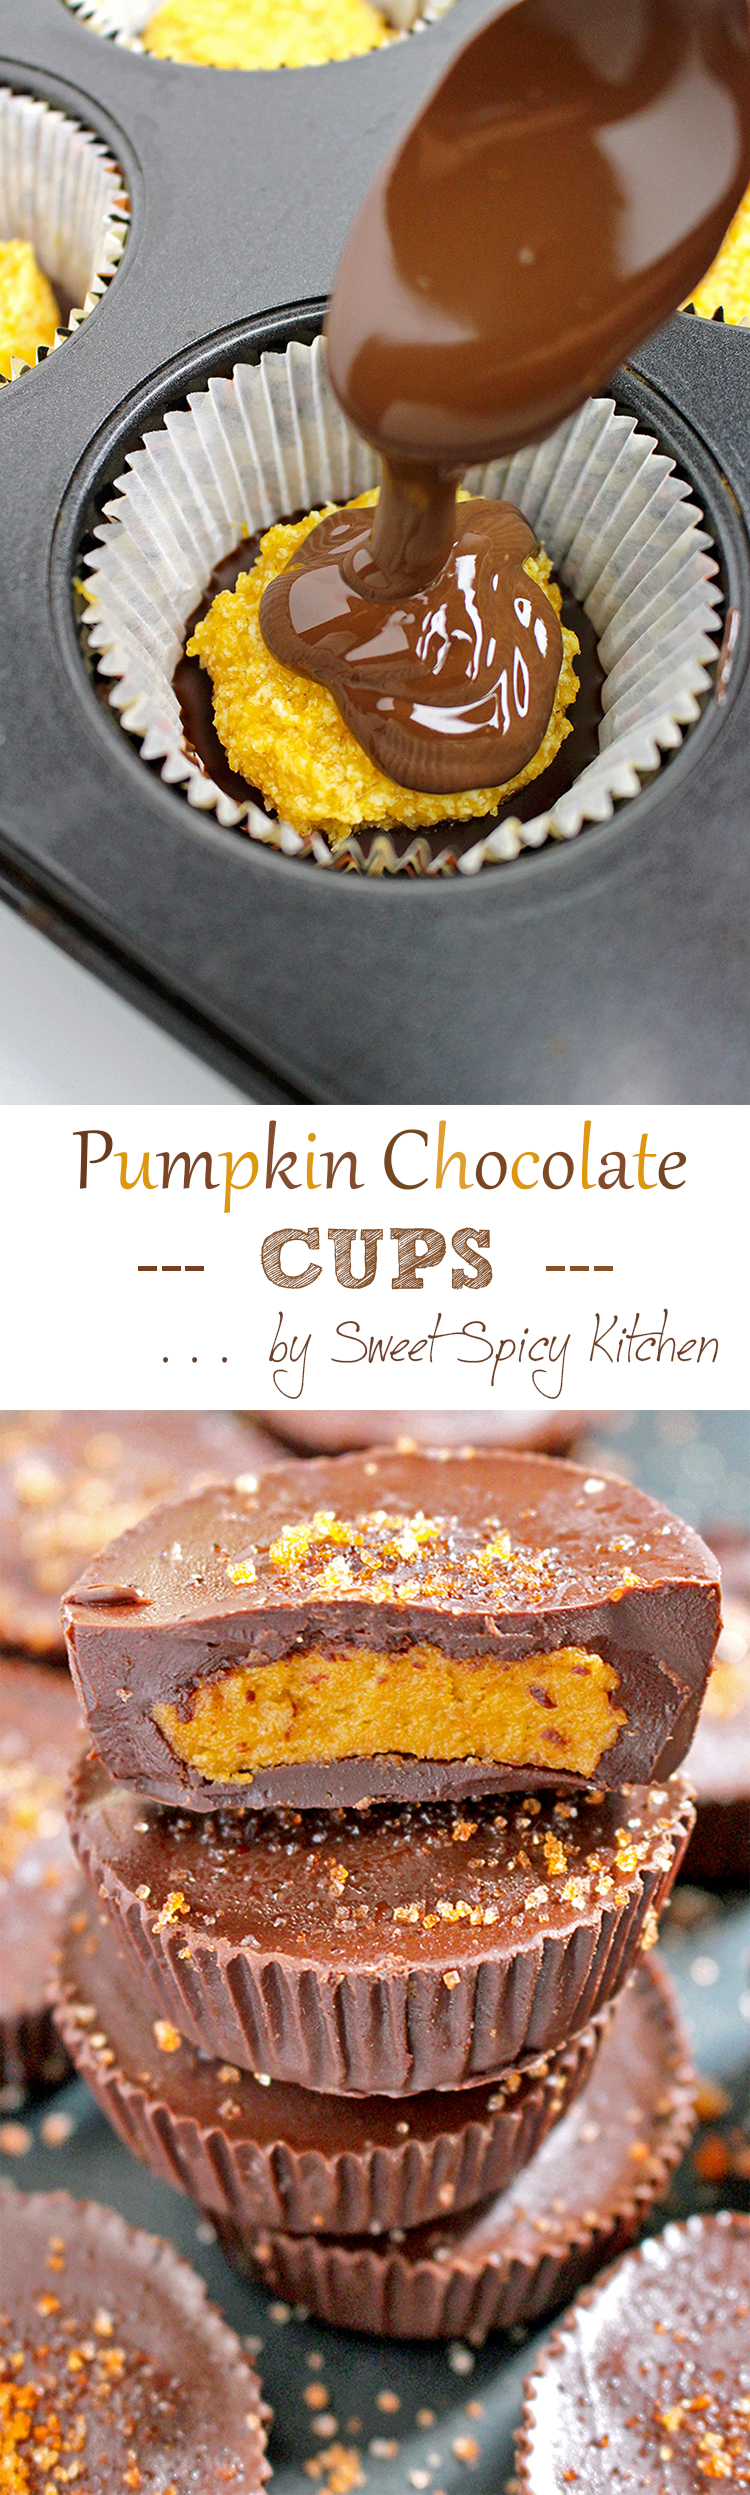 Untitled-000-Recovered Pumpkin Chocolate Cups